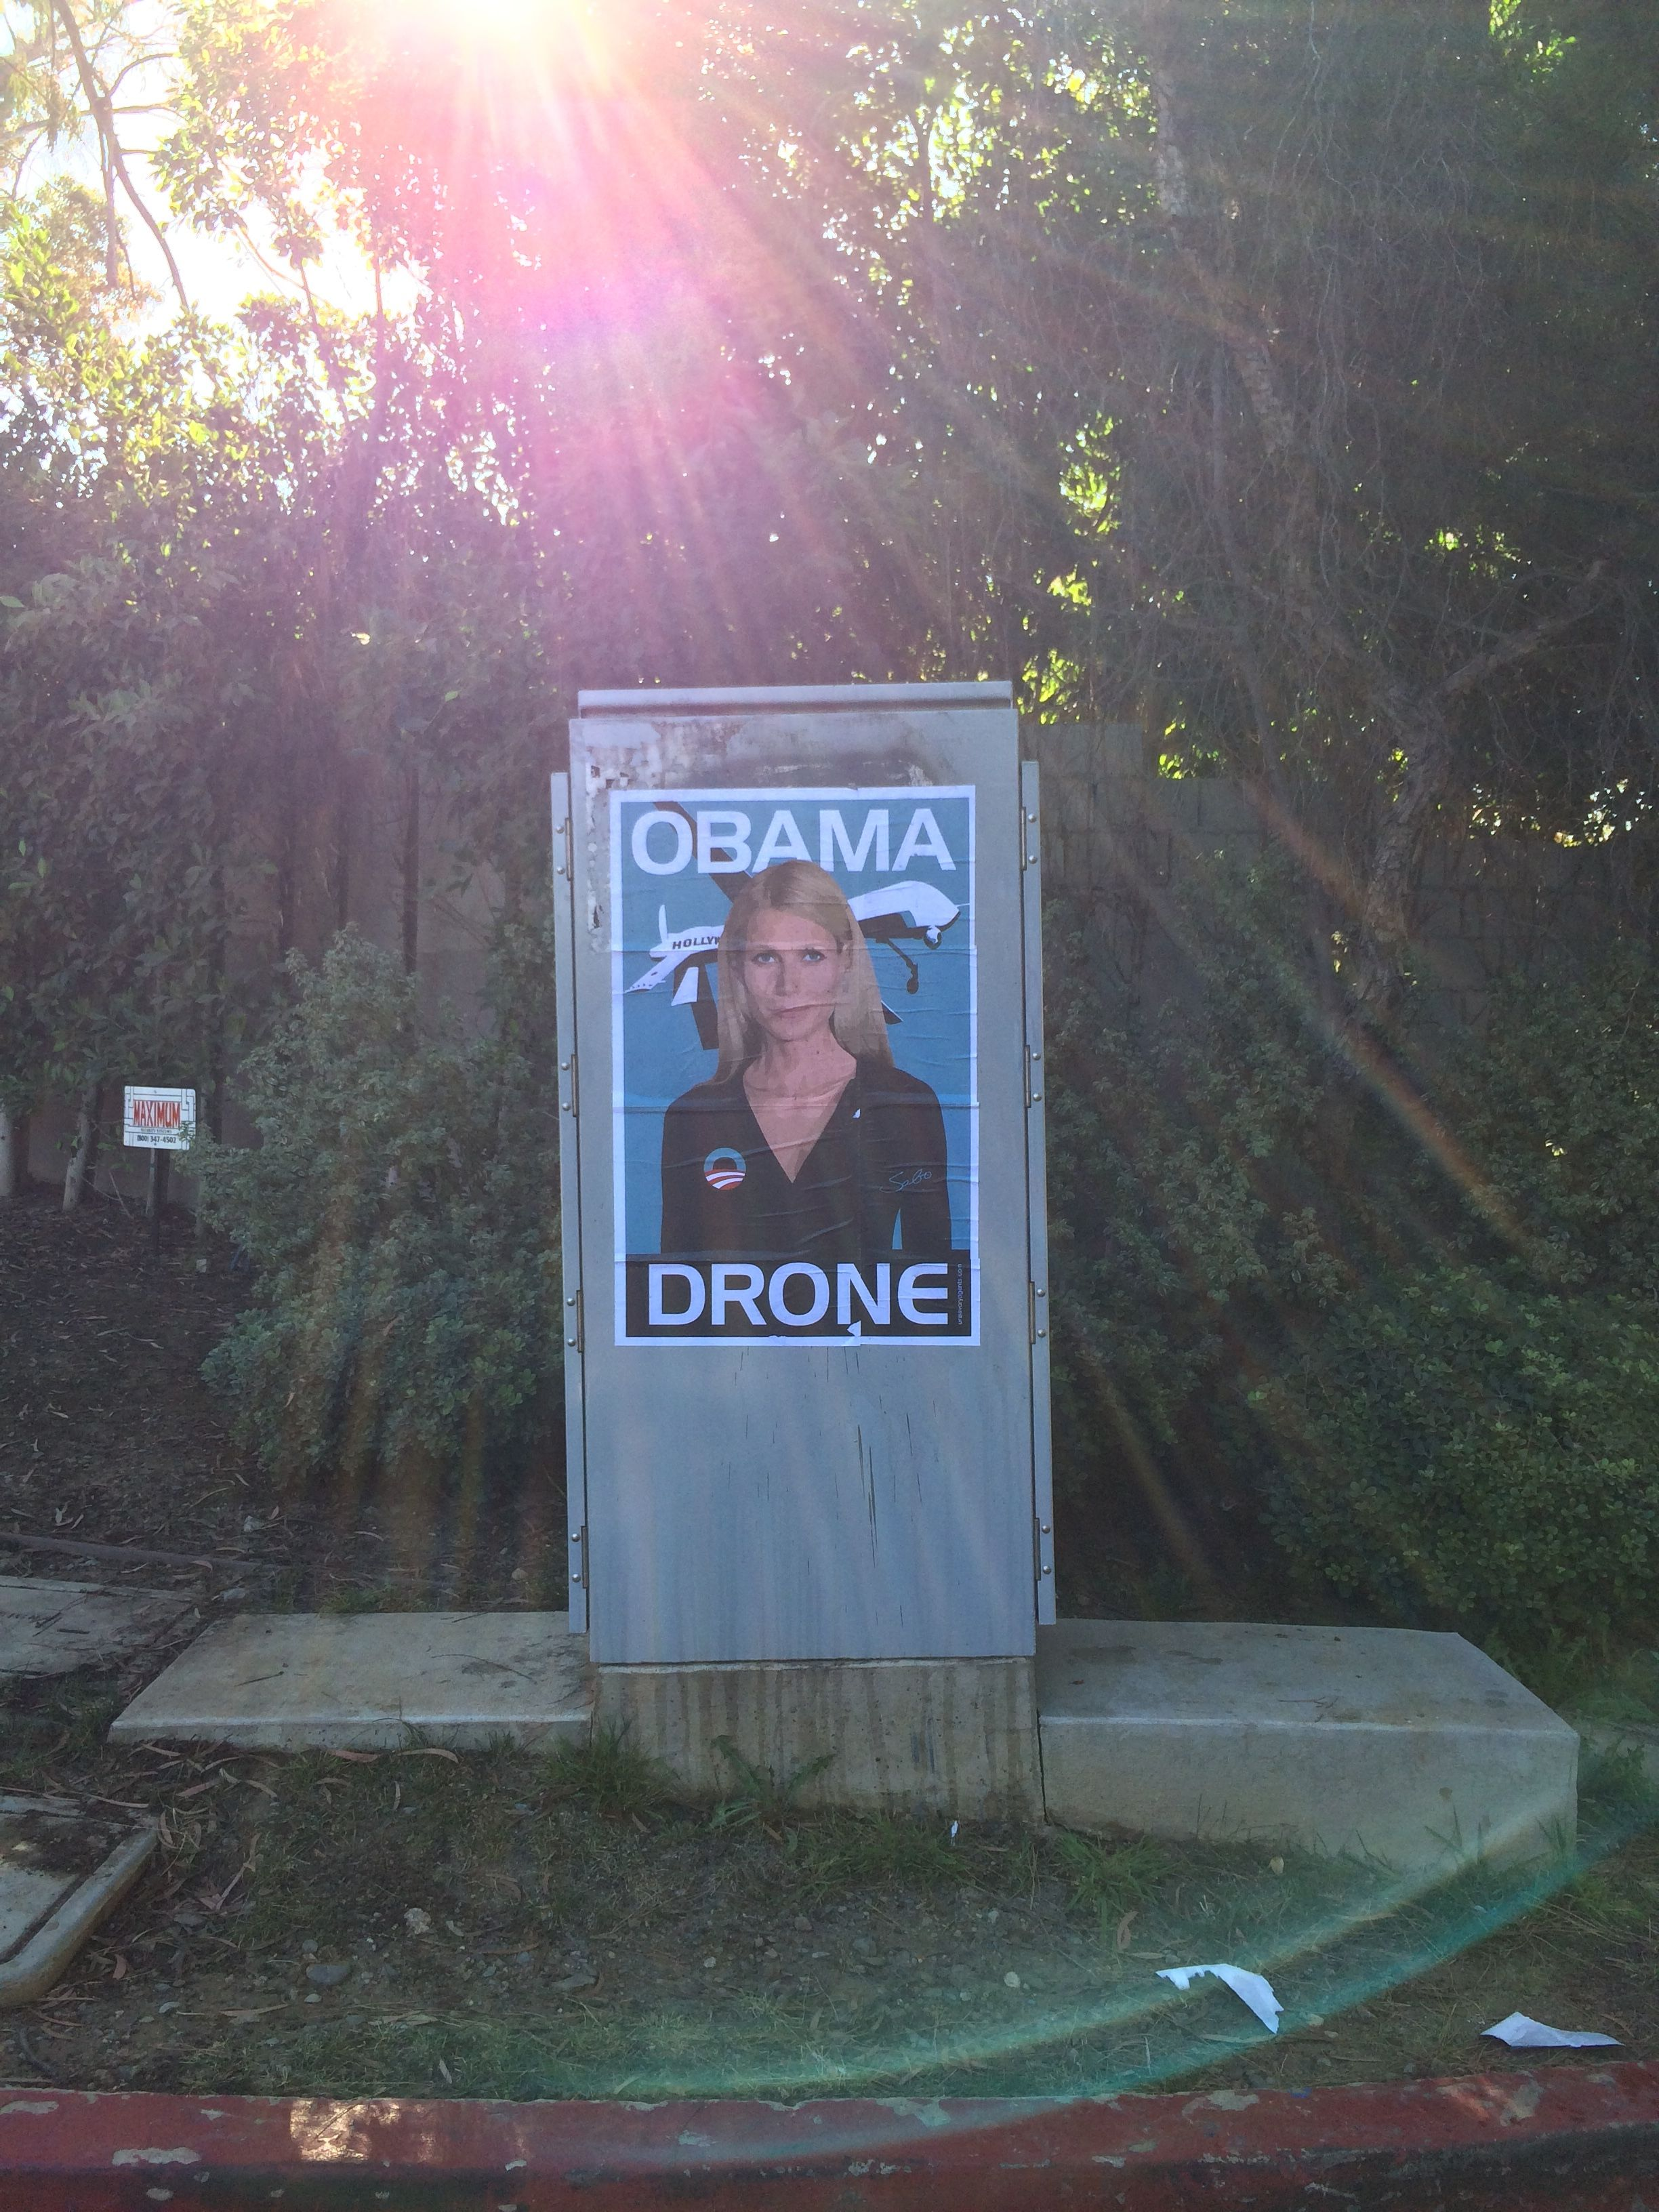 Gwyneth Paltrow Obama Drone posters poster Sabo President Obama DNC fundraiser L.A. Los Angeles Brentwood neighborhood neighbor neighbors hang hanging hung signs plaster plastering plastered traffic signal box boxes lamp posts bus benches anonymous conservative street artist provocative controversial subversive Unsavory Agents UnsavoryAgents outside political Democrats Democrat drones Predator plane planes flying background actor actress home house host hosting gala sun